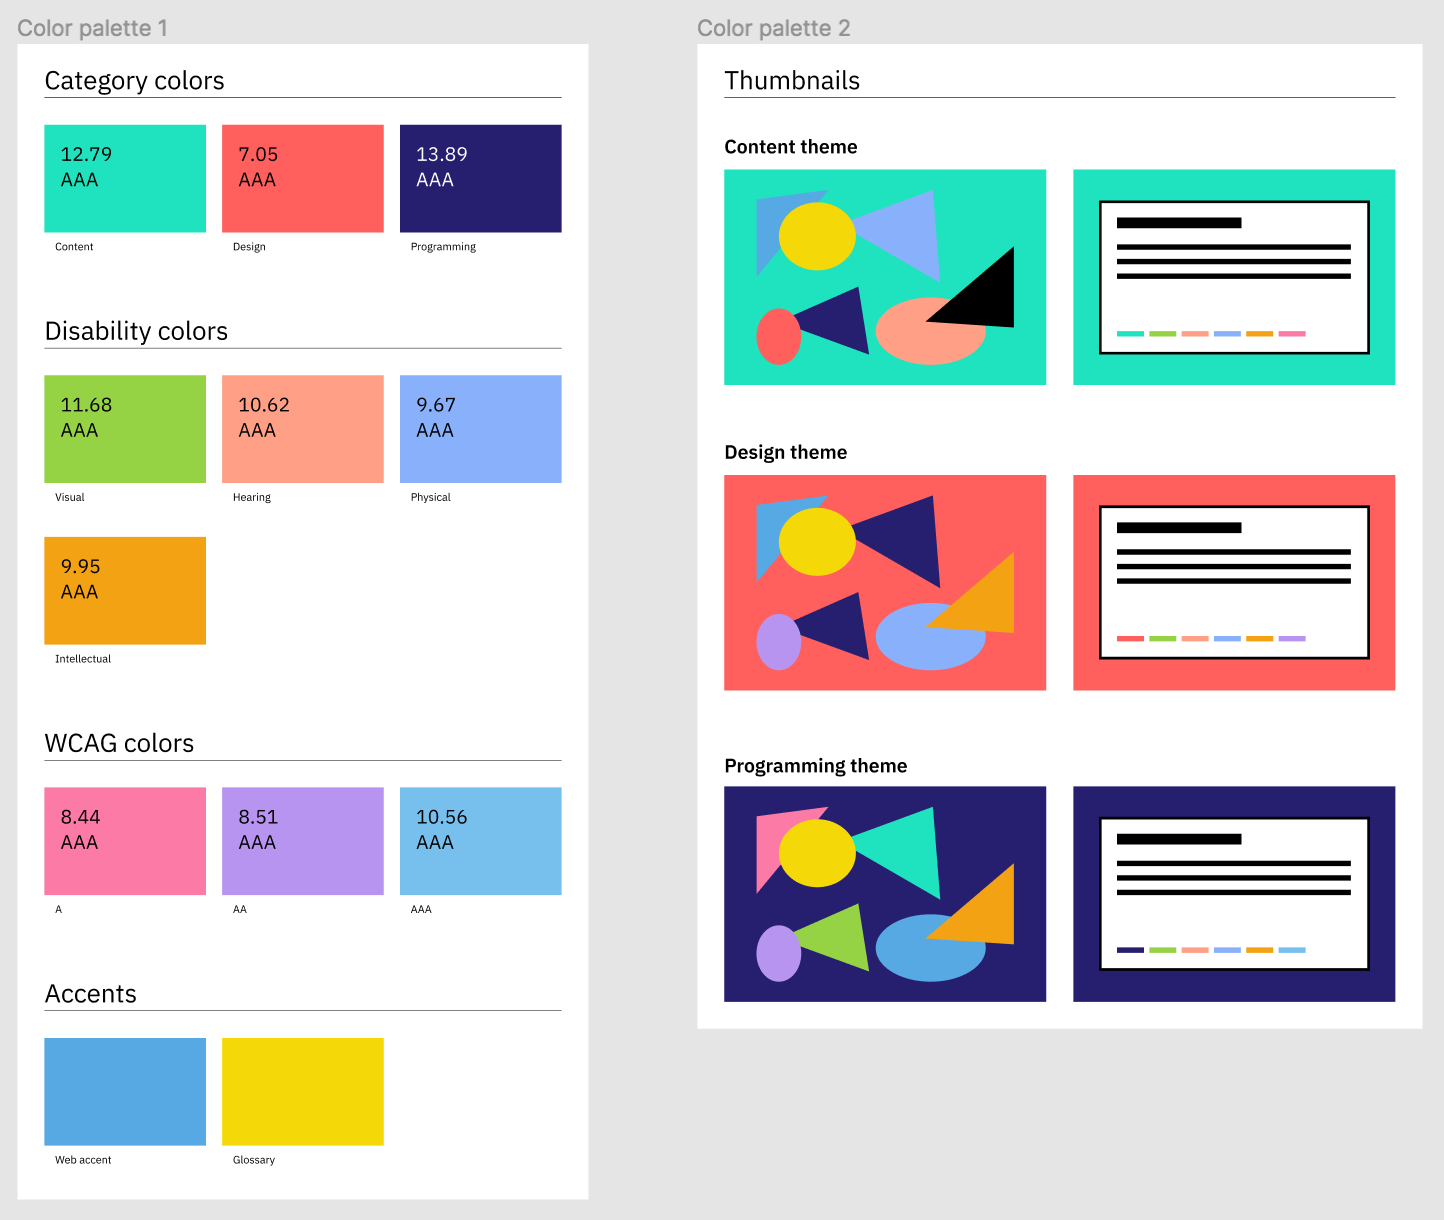 Screenshot of color palette (left) and card thumbnails (right). The color palette includes category, disability, WCAG, and web accent colors. Each color includes the color contrast number and WCAG conformance level (AAA for all except accents). The thumbnails show how all the colors combined. To access this information in a non-image format, go to this  figma file 's styles & assets page.